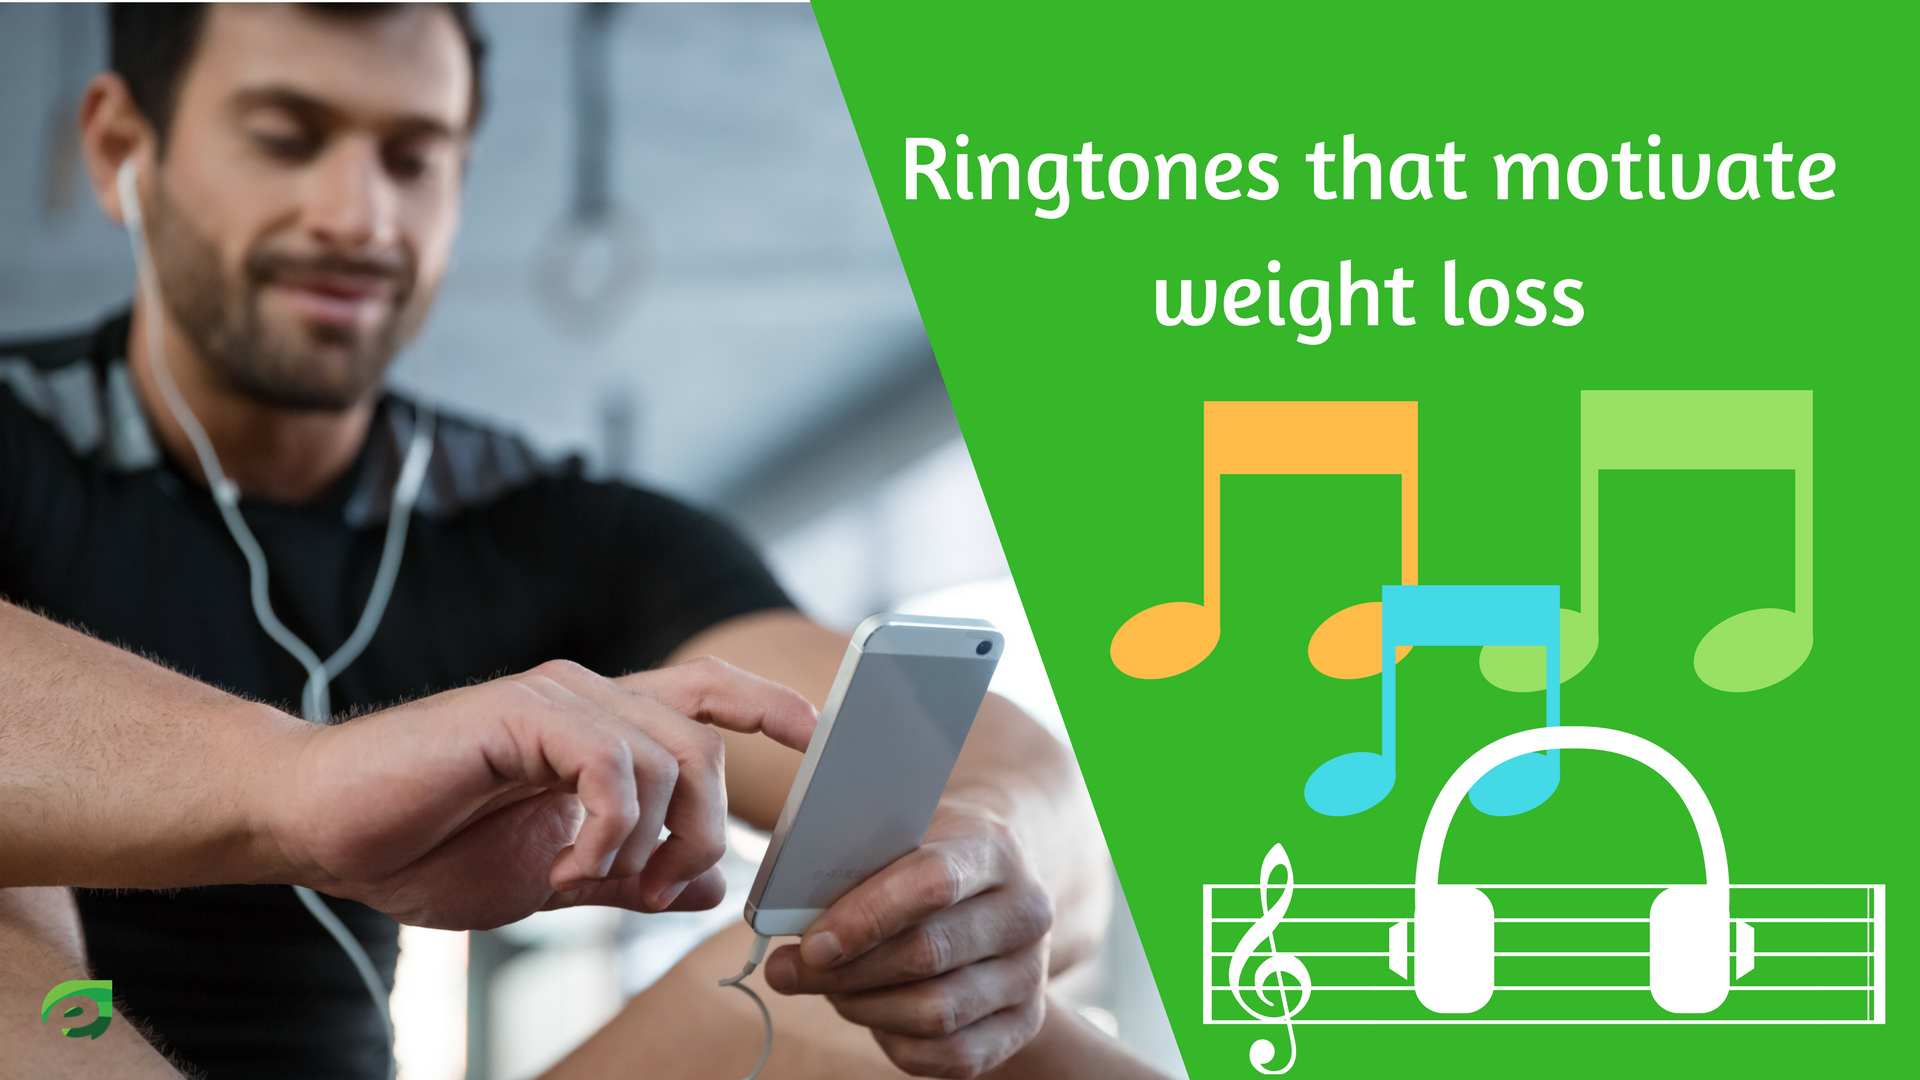 Ringtones - Loss Weight using Phone